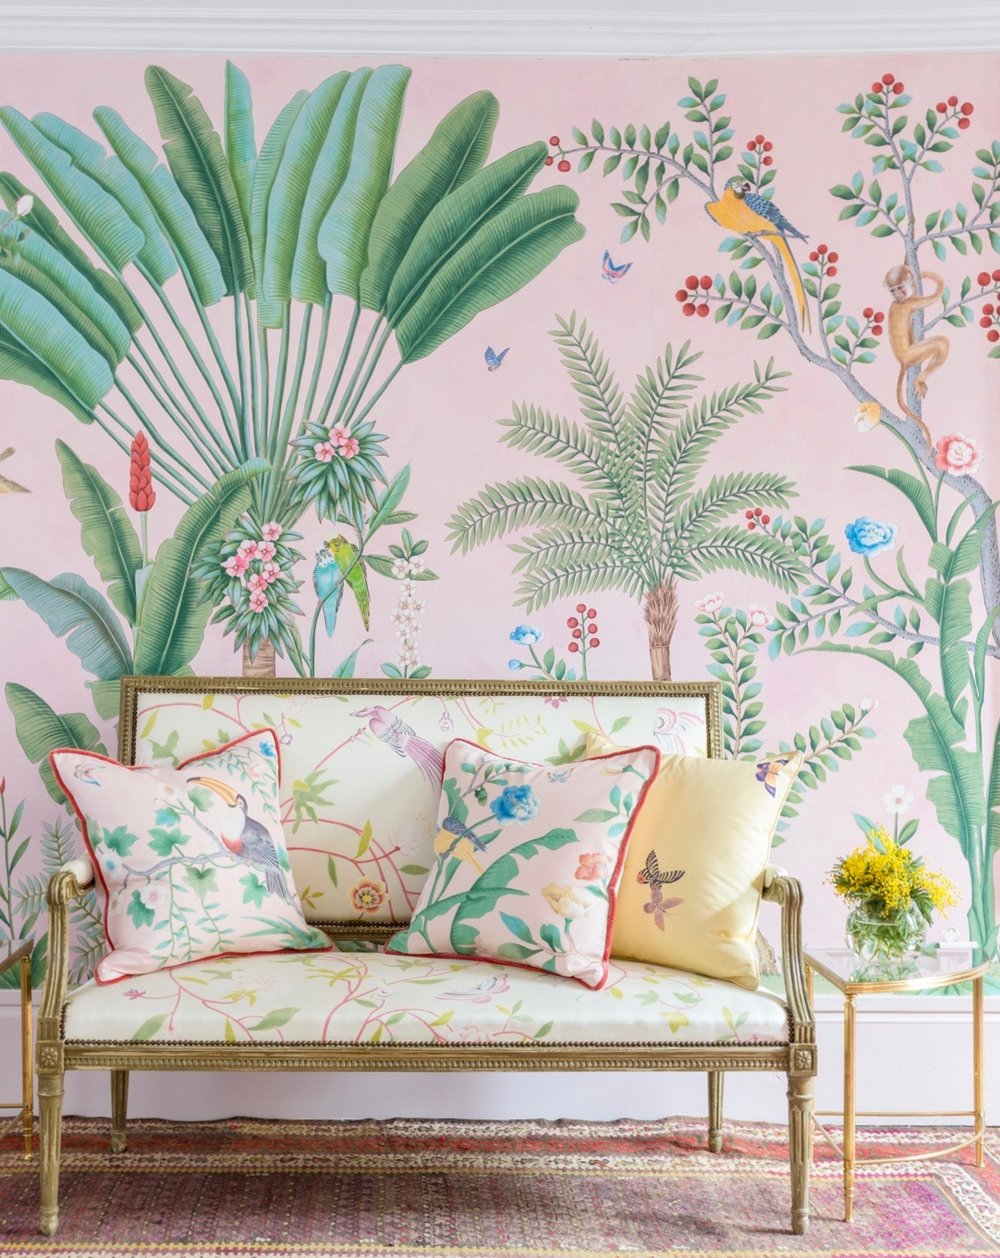 aquazzura-de-gournay-wallpaper-shoes-8.jpg